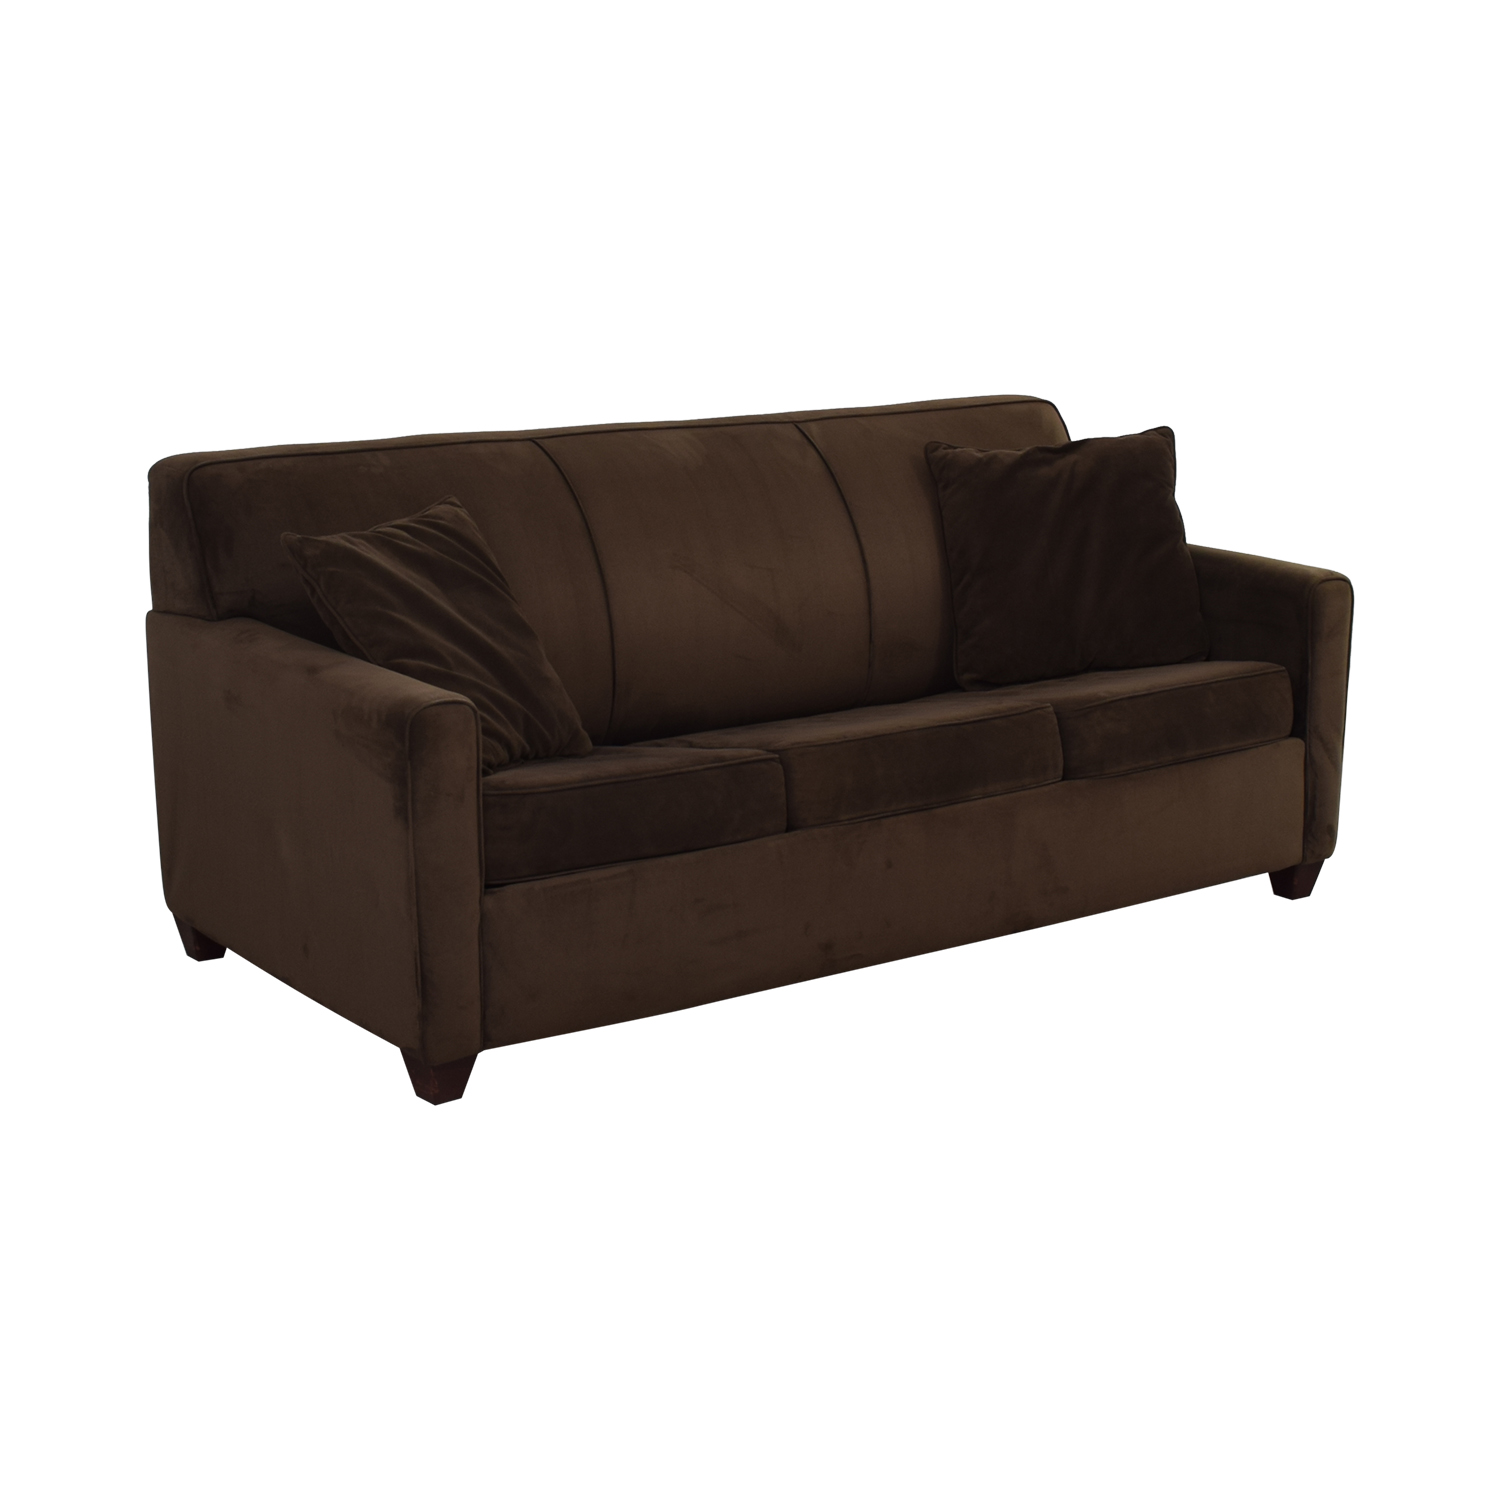 Raymour & Flanigan Raymour & Flanigan Three Cushion Sleeper Sofa price